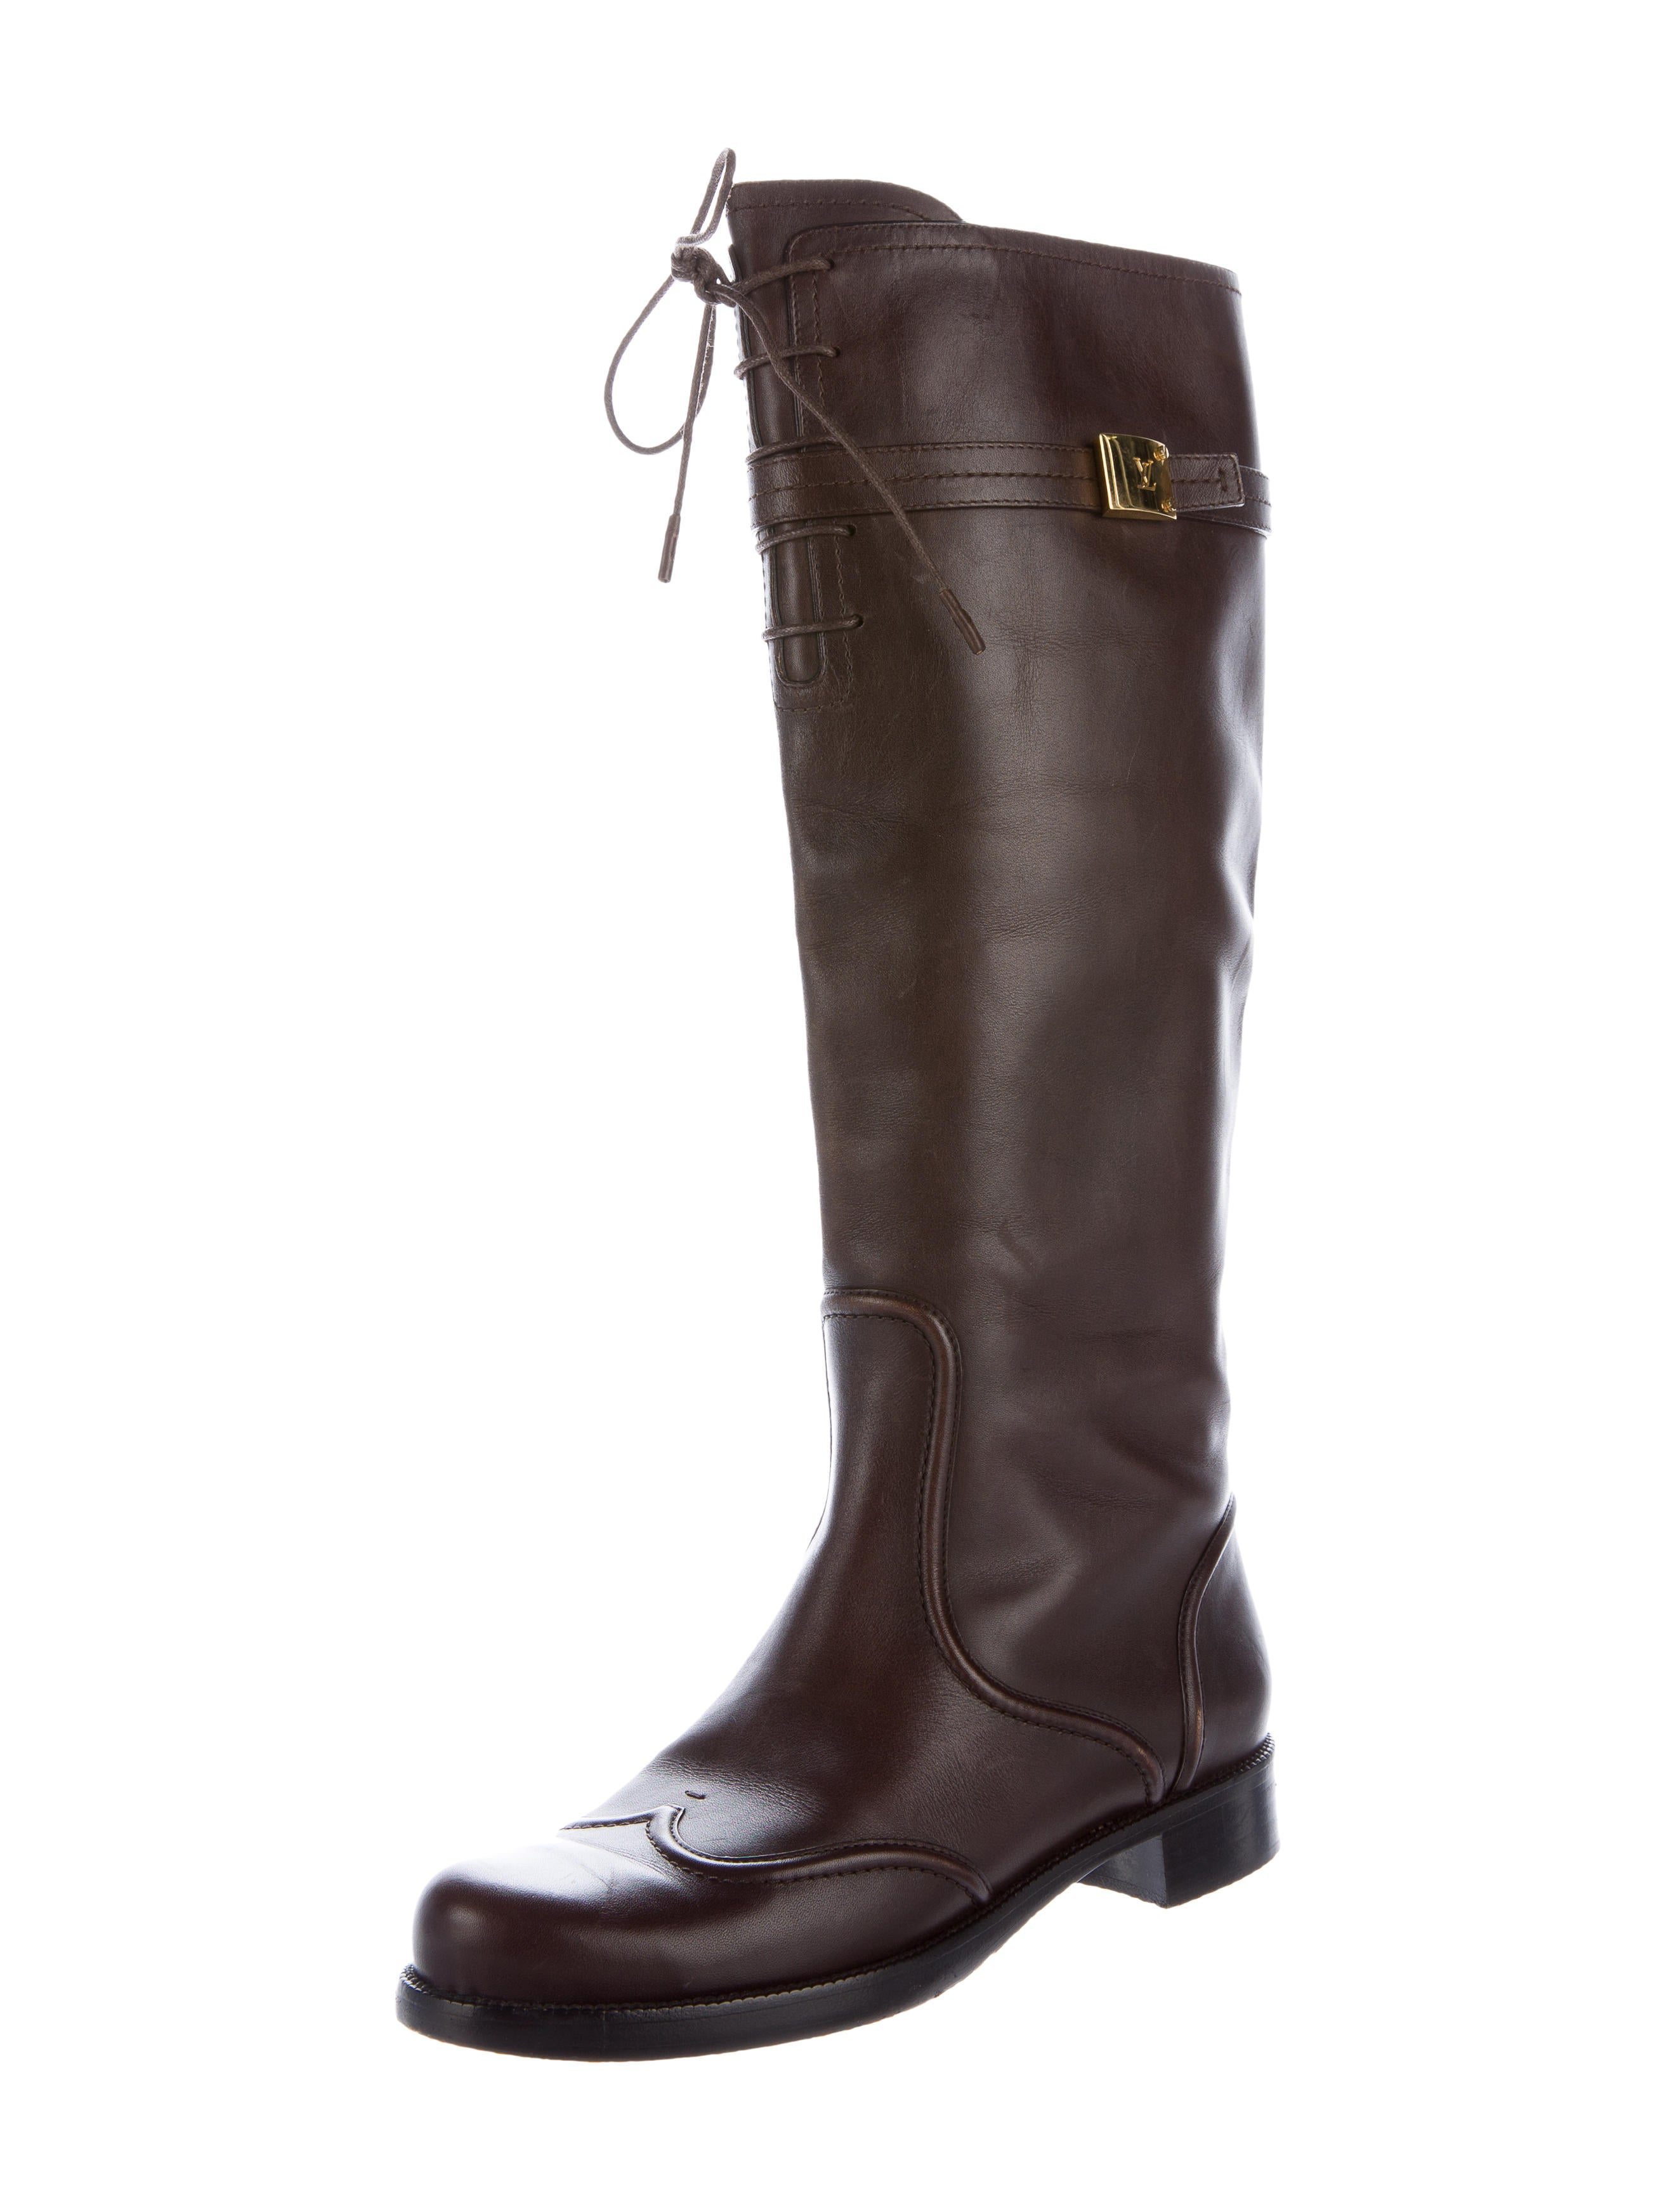 louis vuitton leather knee high boots shoes lou93578